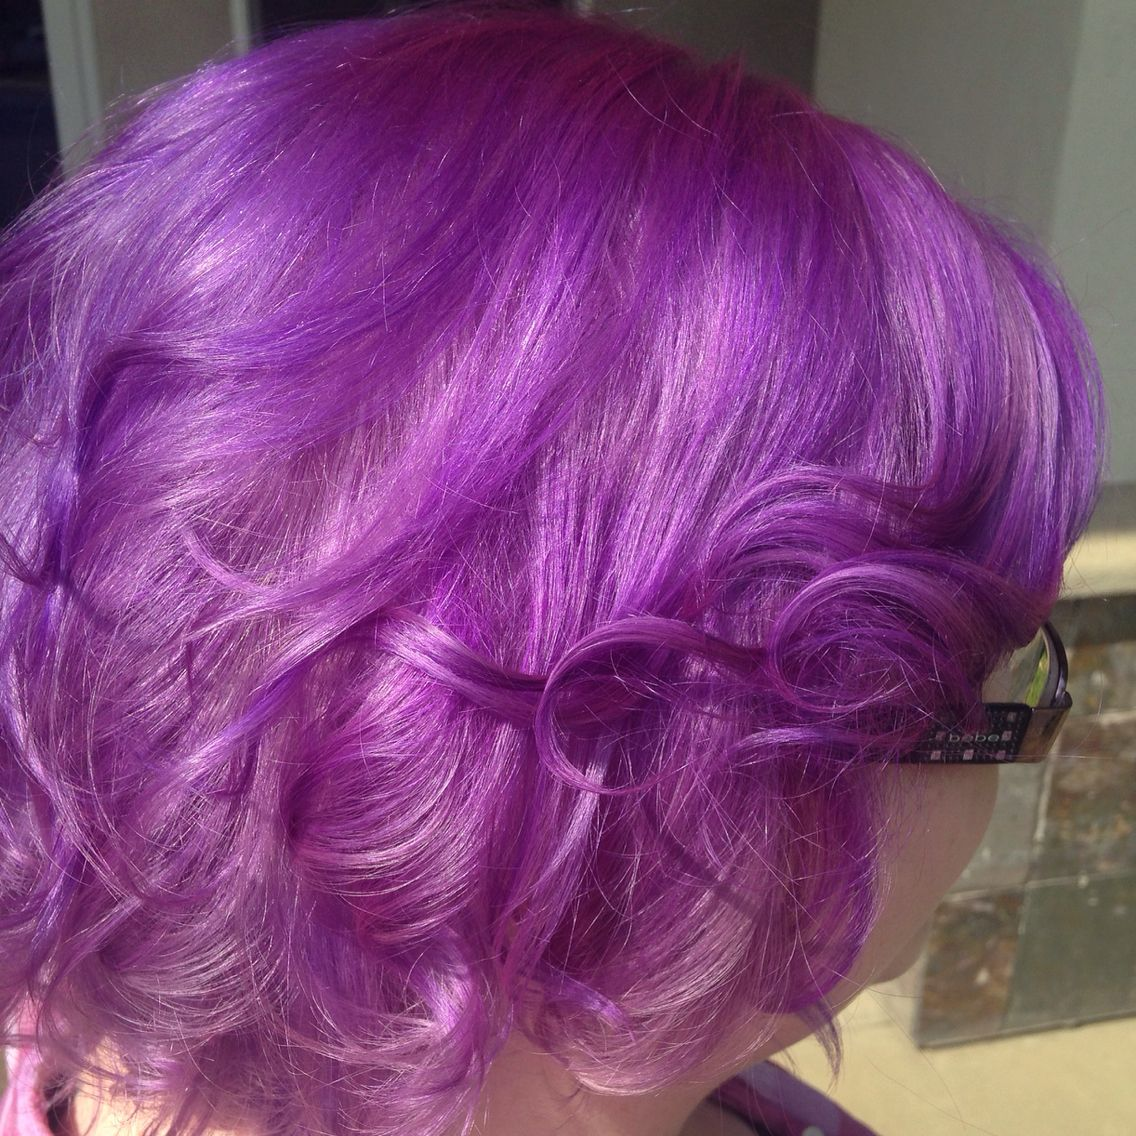 Purple hair I did! Love this Pravana color